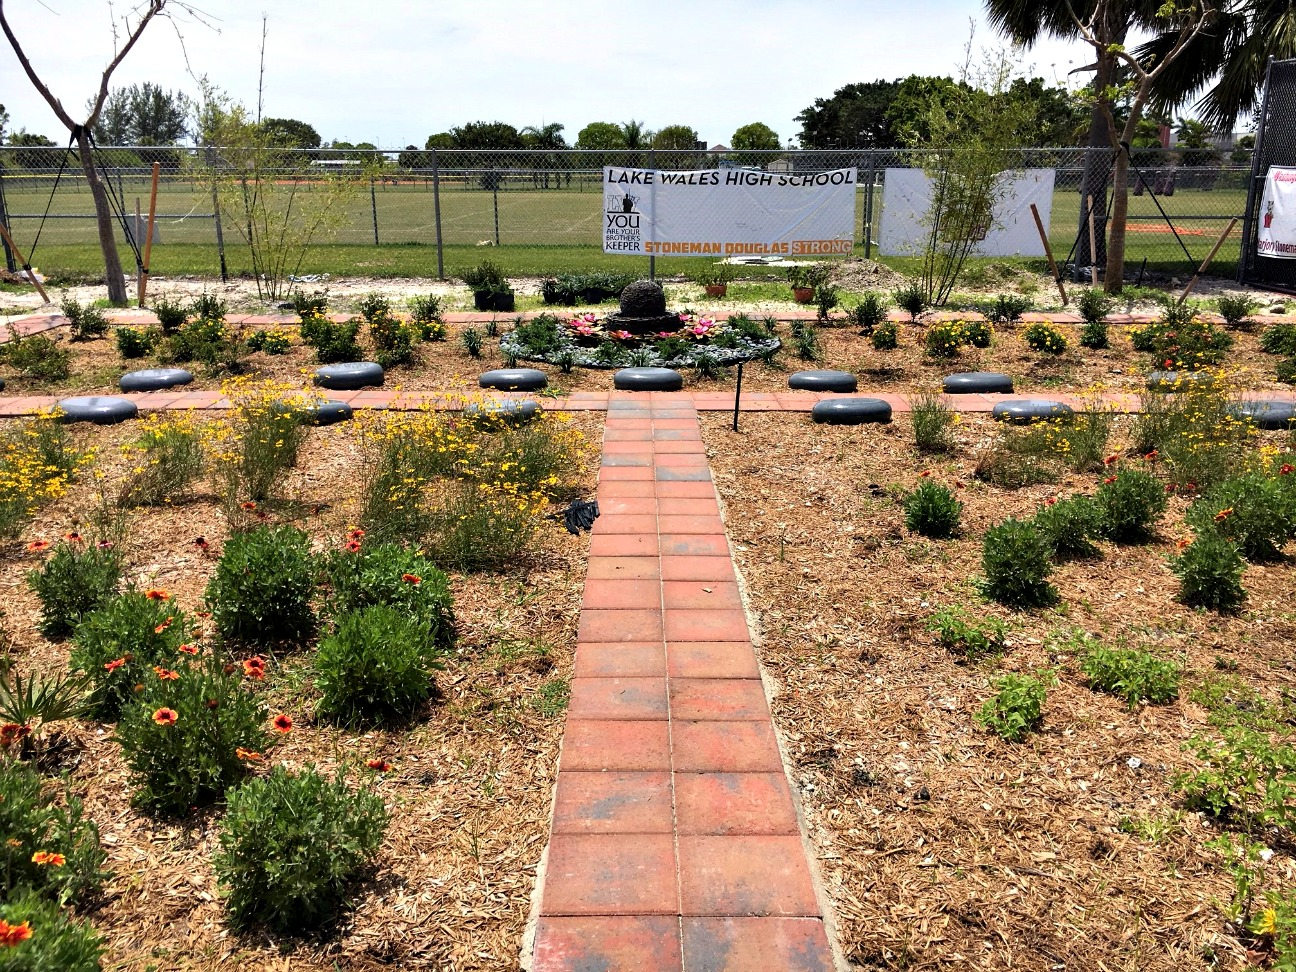 BrightView helps honor Parkland victims with reflective tranquility garden